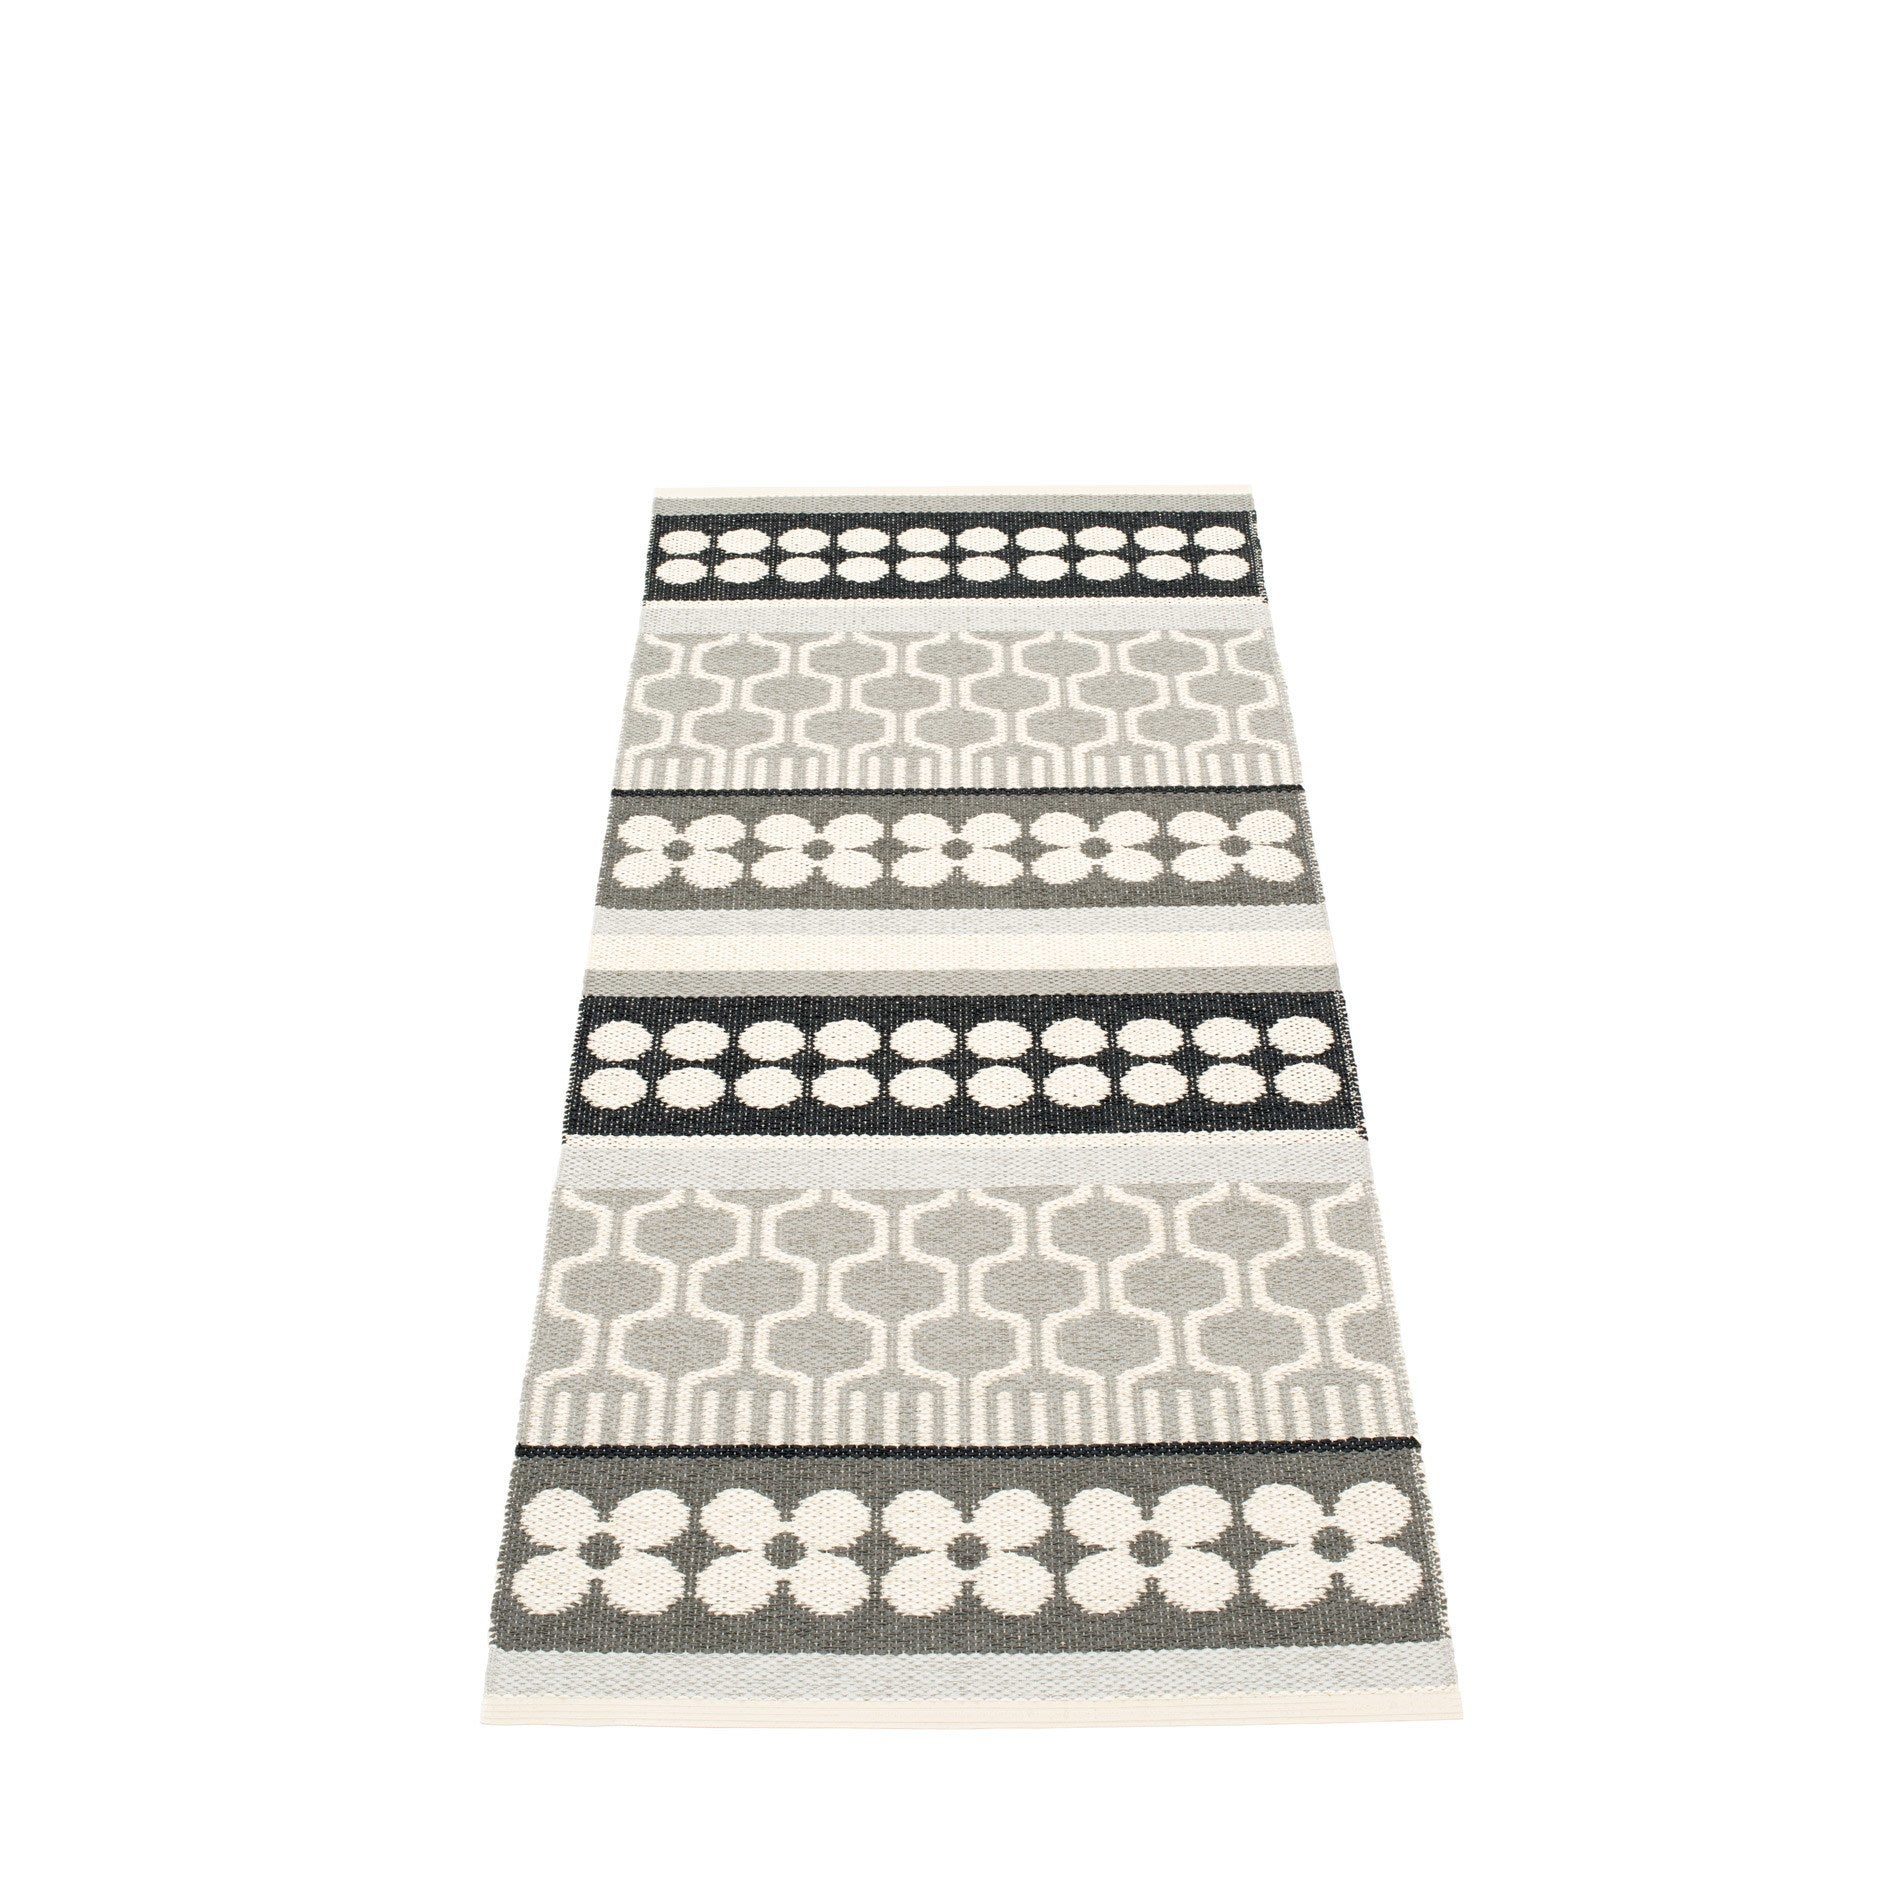 "Pappelina Indoor/Outdoor Rug Asta Warm Grey (70cm x 180cm) or (27.6"" x 70.9"")"